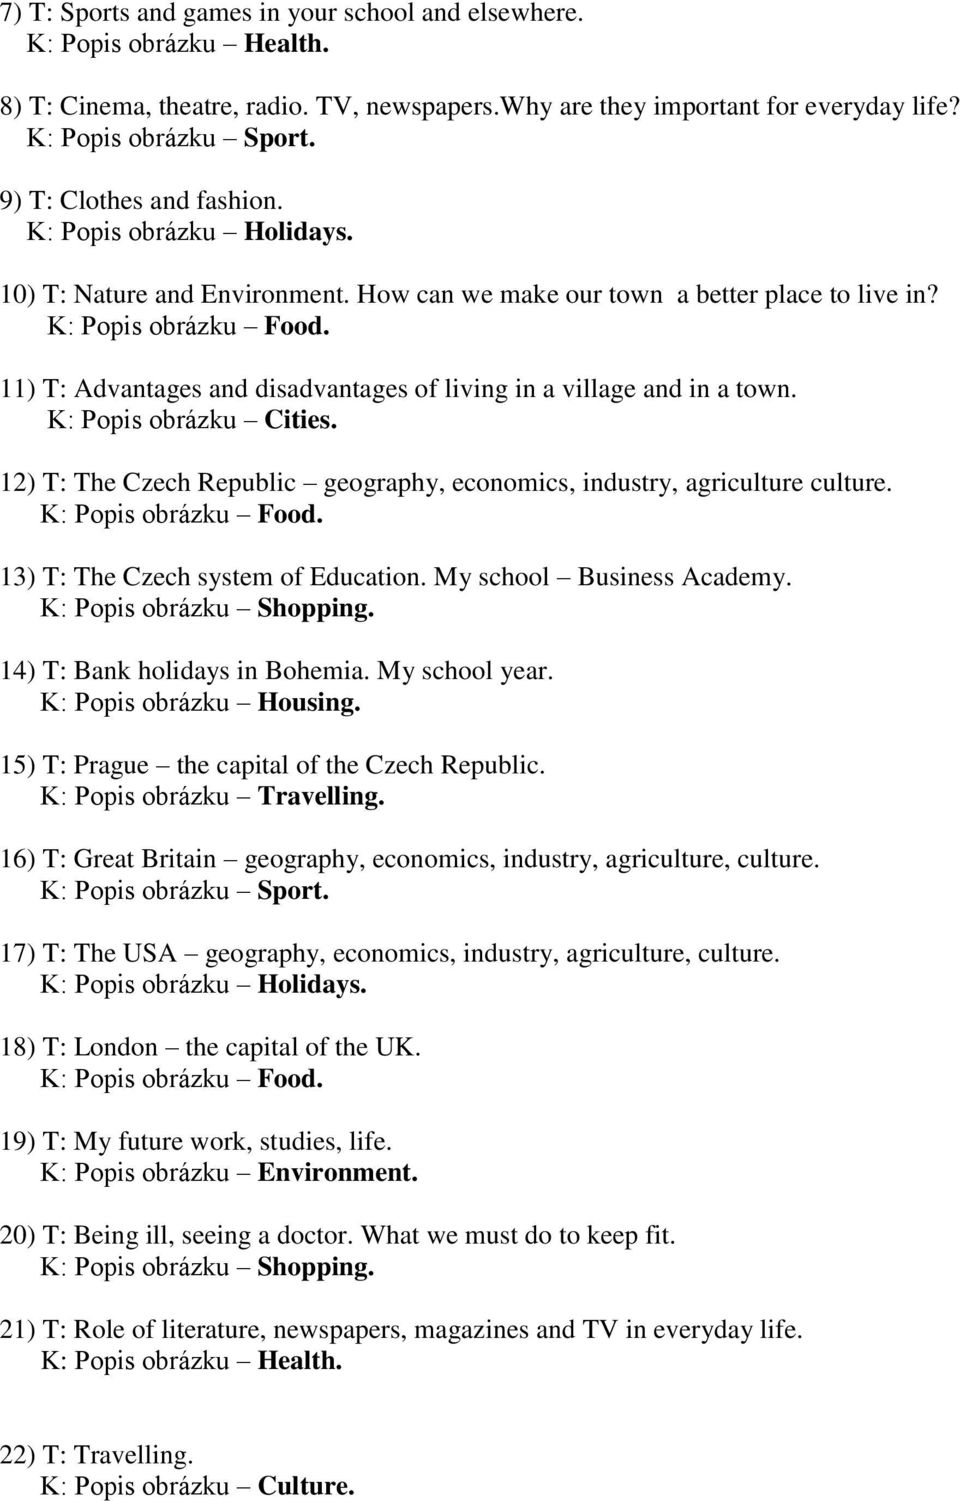 11) T: Advantages and disadvantages of living in a village and in a town. K: Popis obrázku Cities. 12) T: The Czech Republic geography, economics, industry, agriculture culture. K: Popis obrázku Food.